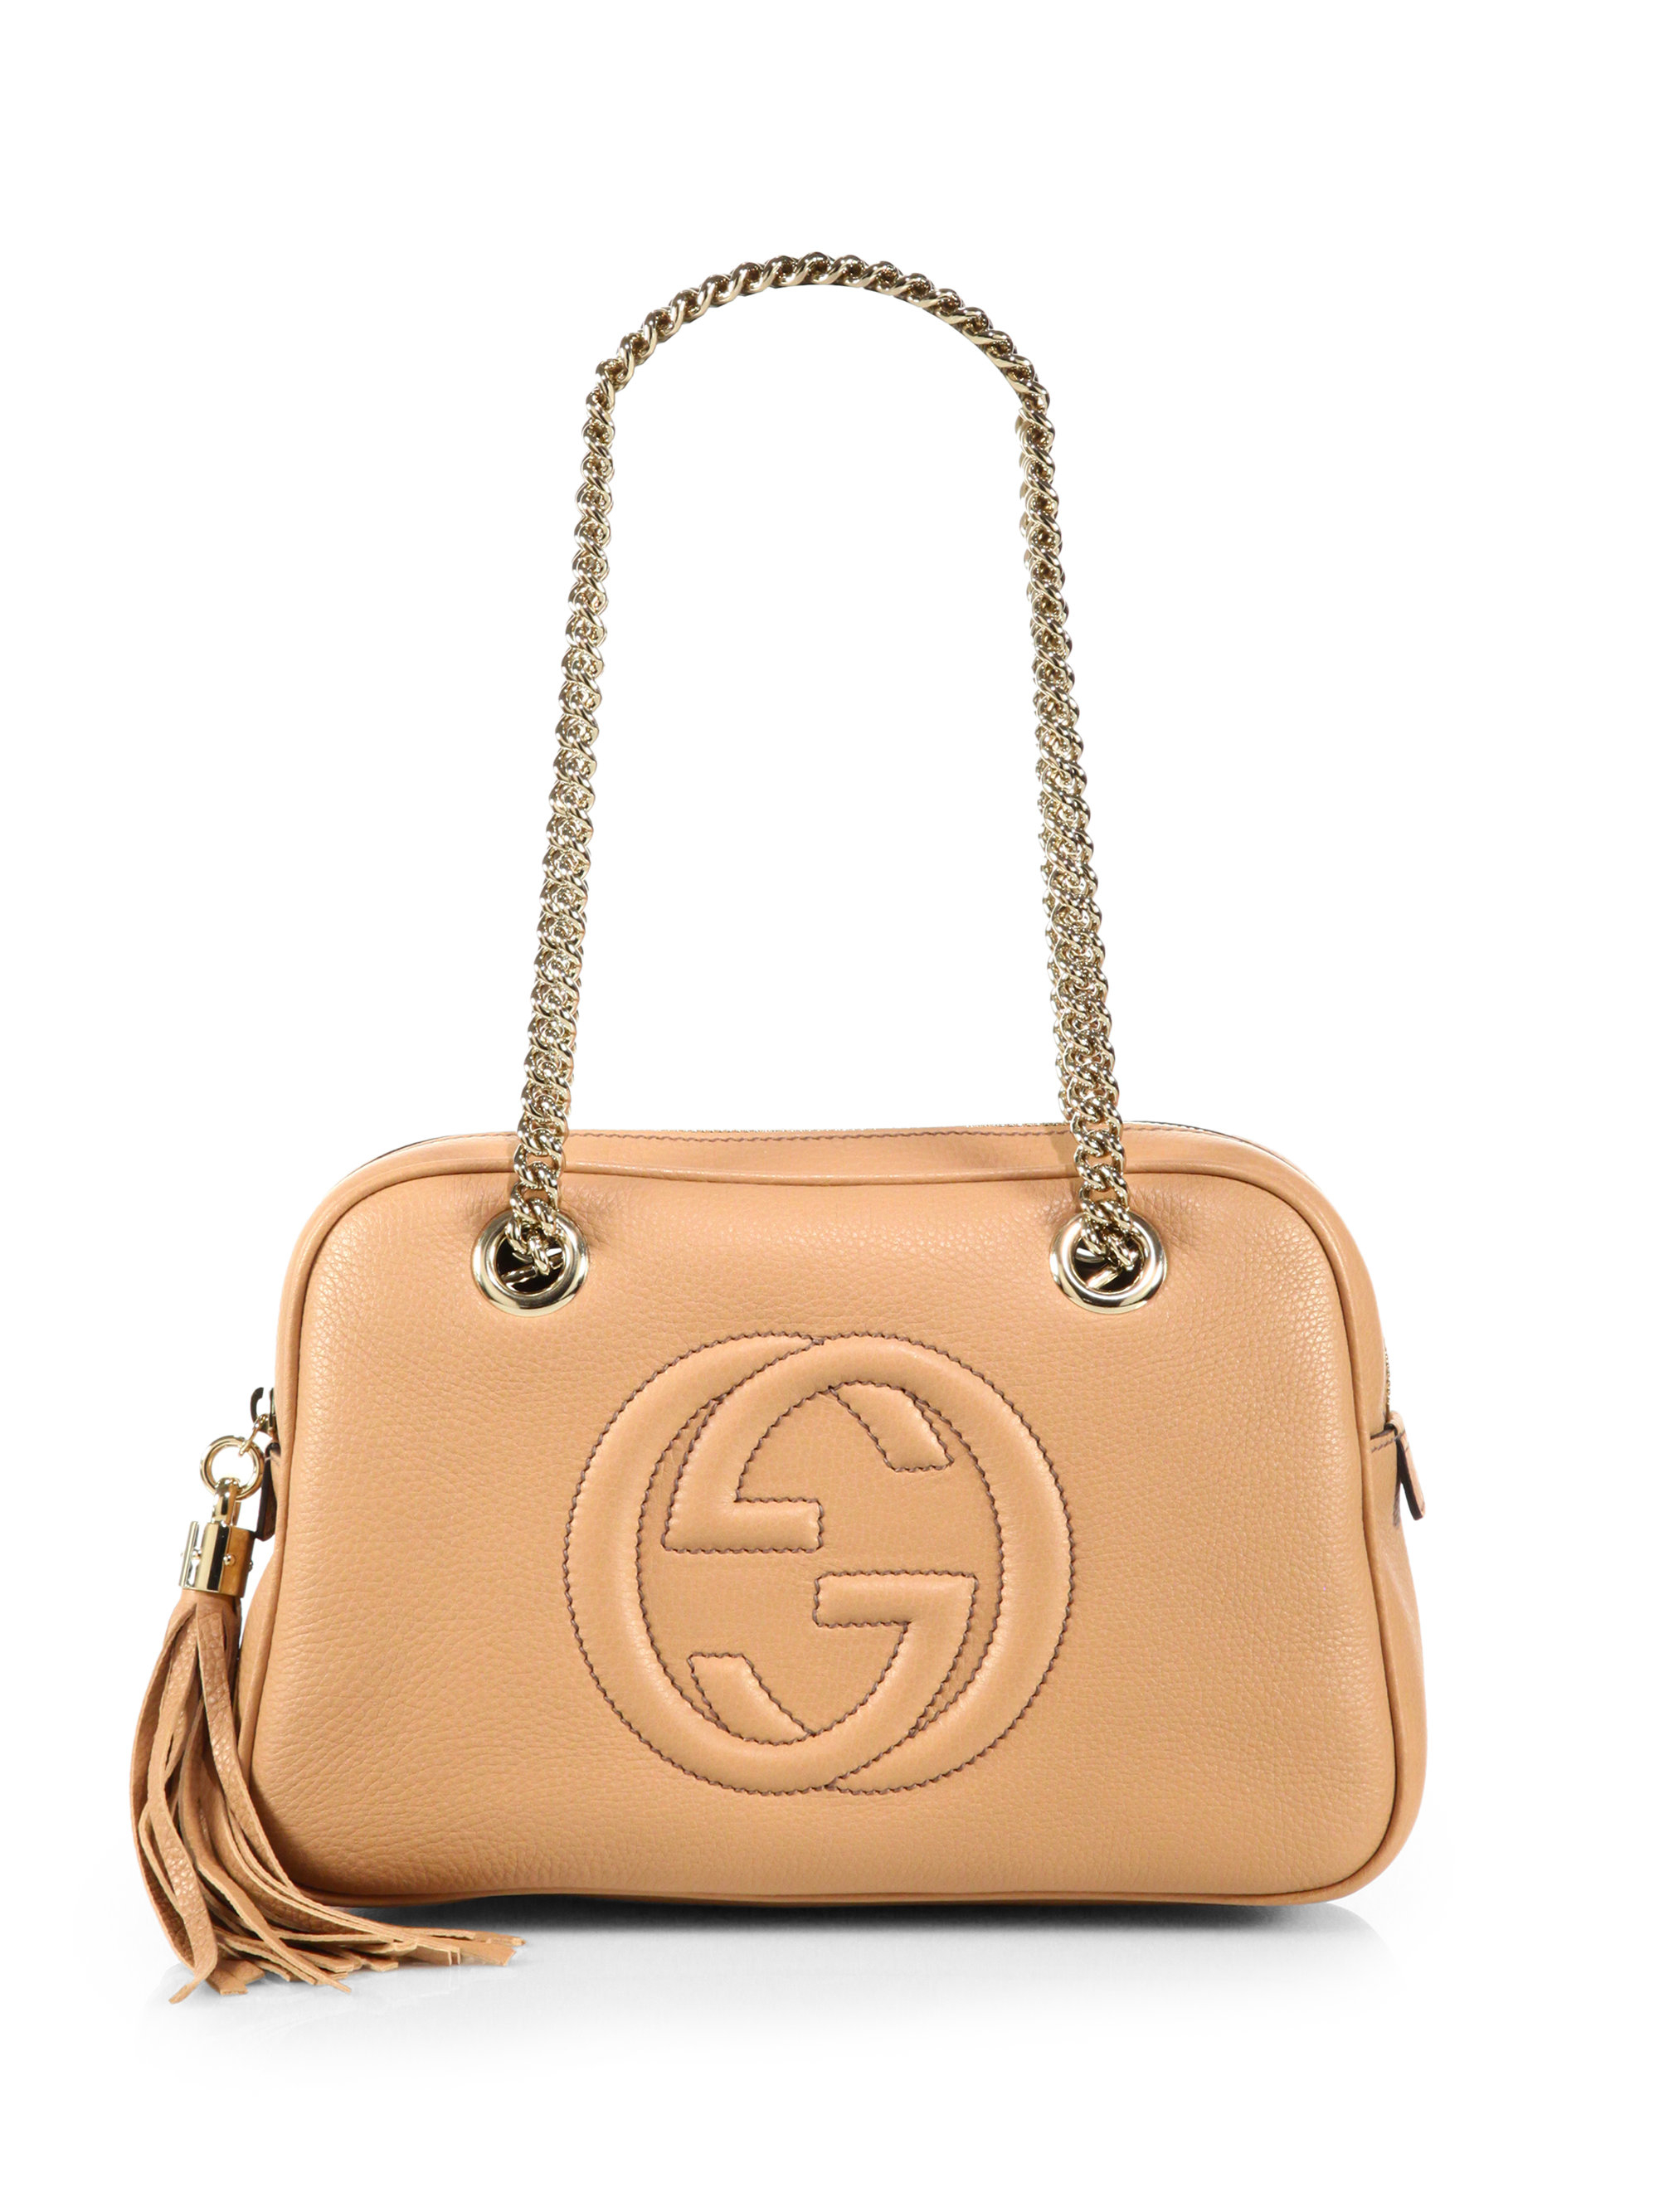 gucci soho leather chain shoulder bag in pink lyst. Black Bedroom Furniture Sets. Home Design Ideas